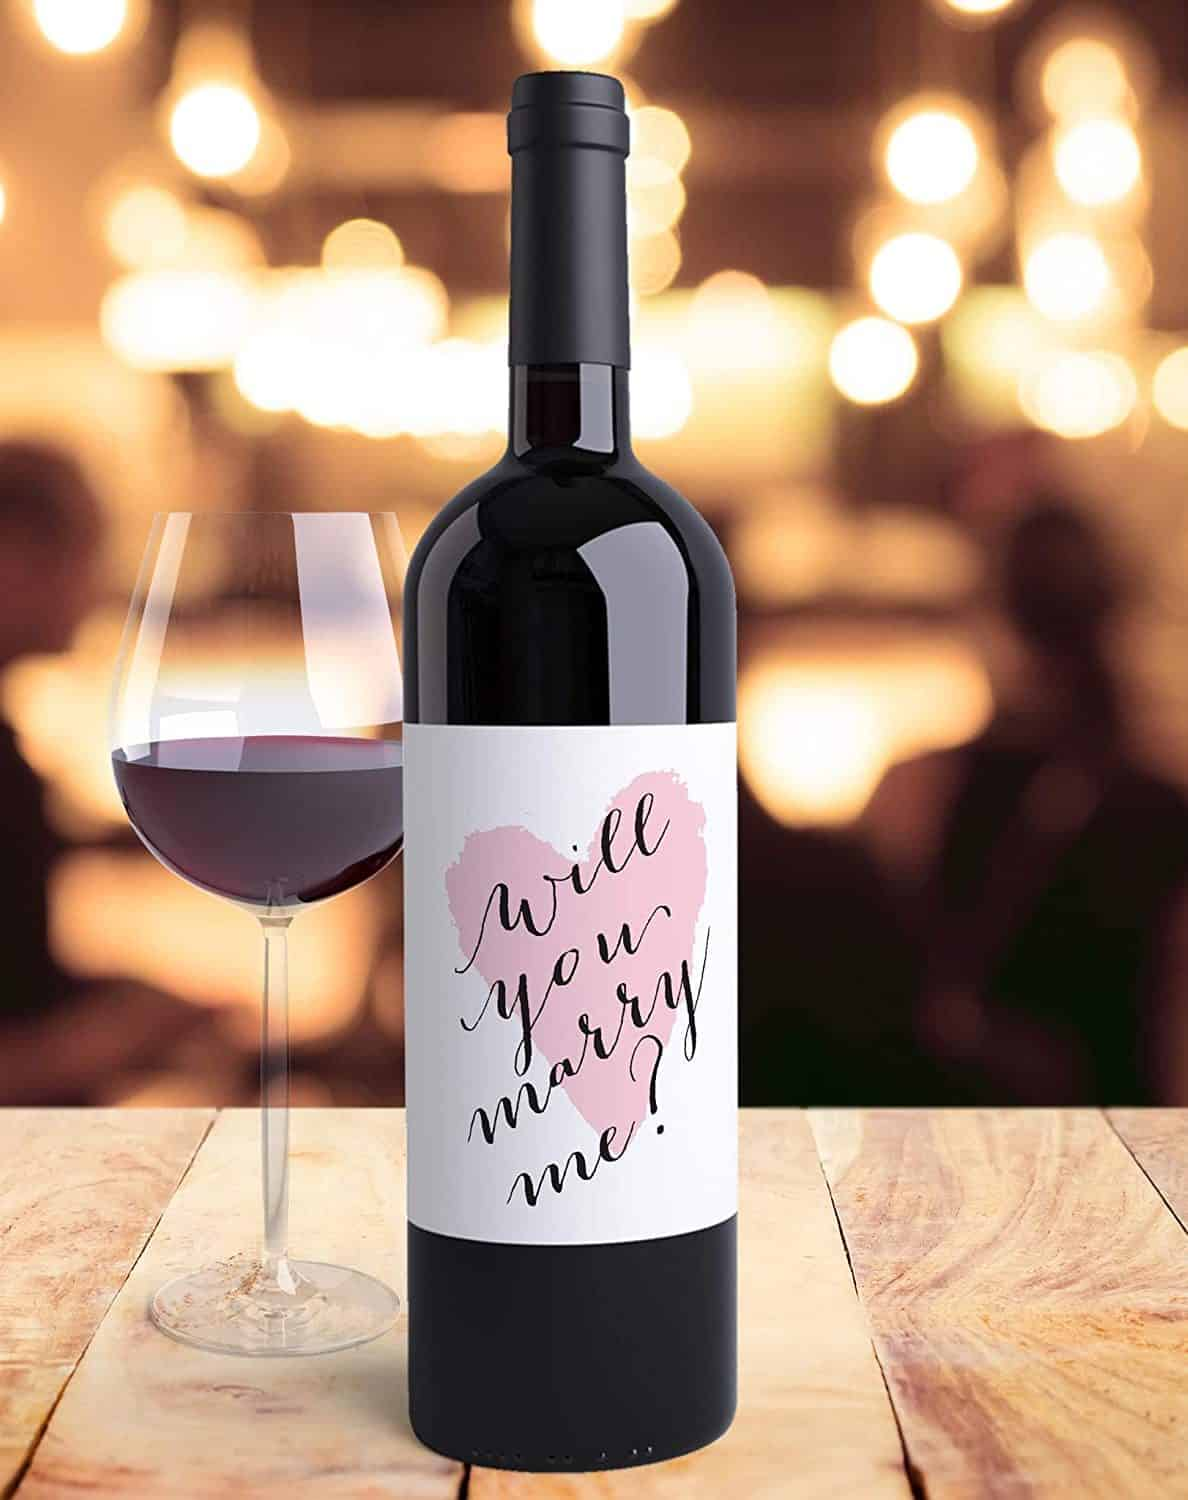 a wine bottle's label with wedding proposal